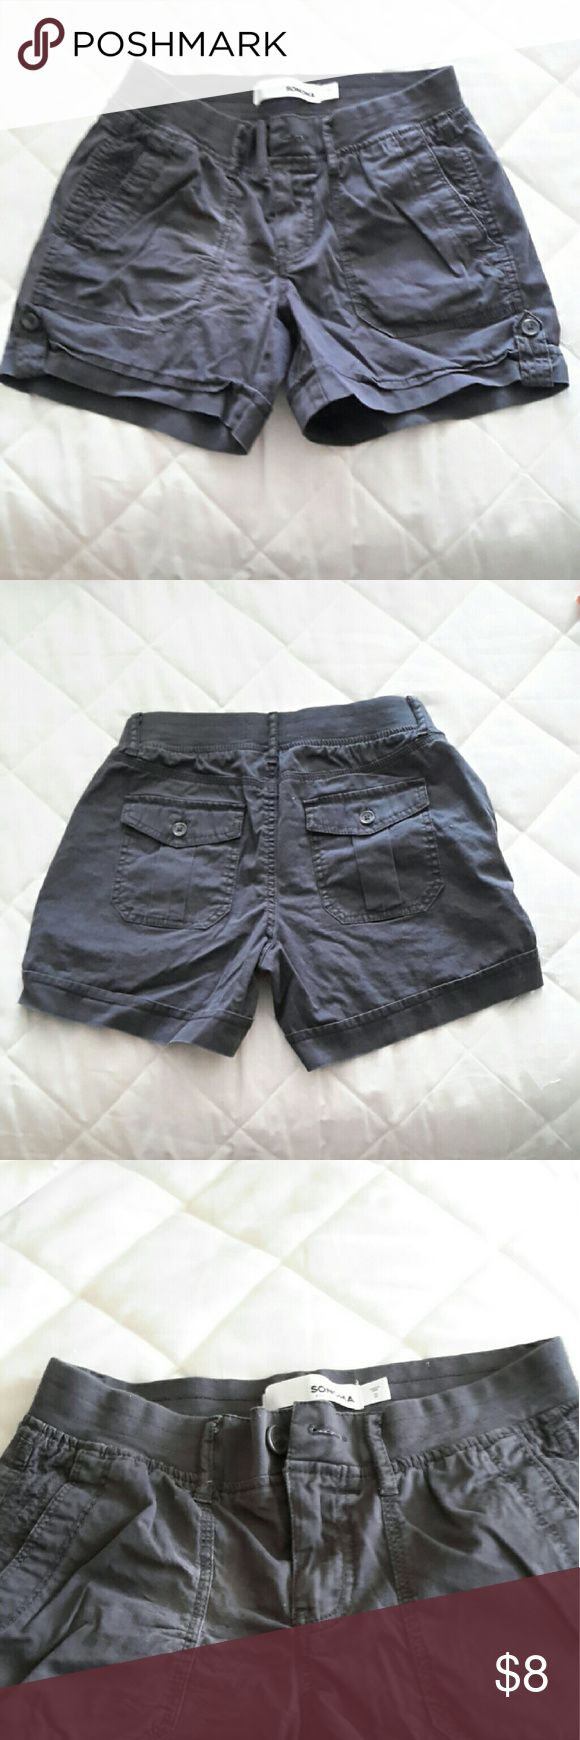 GRAY SHORTS Gray shorts with two front pockets and two button closure back pockets. Button and zipper front closure with soft wide elastic stretchy waistband. New without tags Also have another pair in white listed separately but will bundle if interested ?? Sonoma Shorts